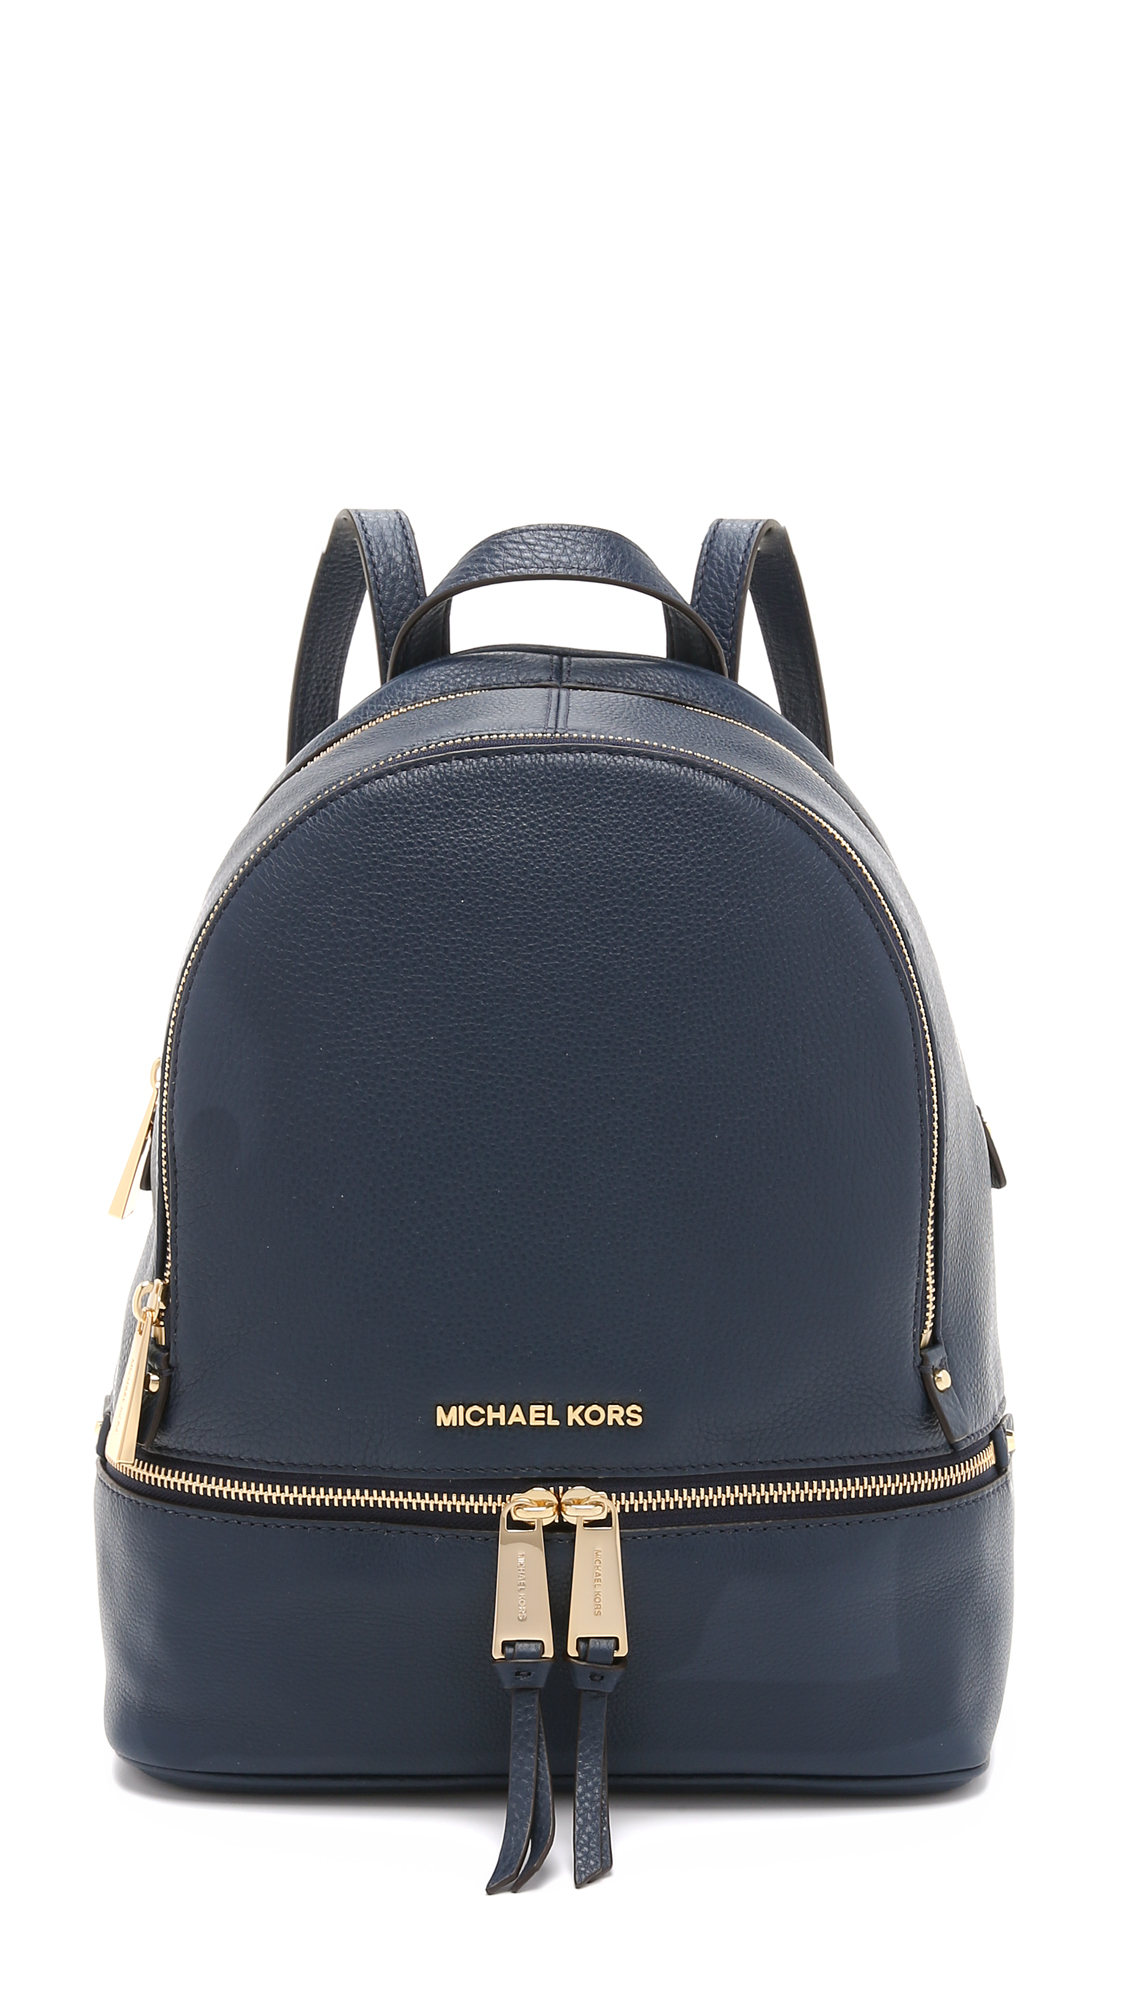 080c5f03bc46 Michael Kors Bags Backpack | Stanford Center for Opportunity Policy ...